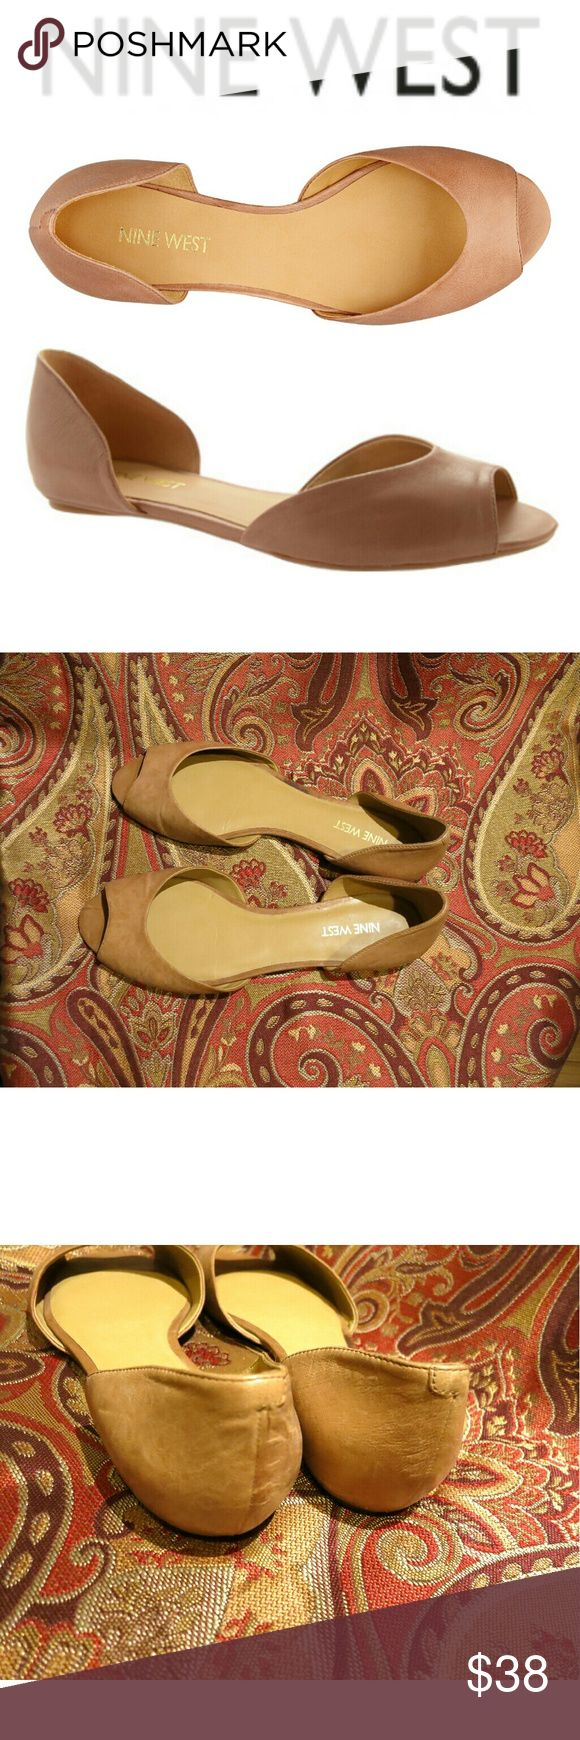 Byte Me Tan Leather Peep Toe Flats Nine West Byte Me leather flats in excellent condition. Worn only once, so it has very clean soles both outer and inner. A little wrinkling of the leather, but in generally like new condition! Size 8 women's. Nine West Shoes Flats & Loafers